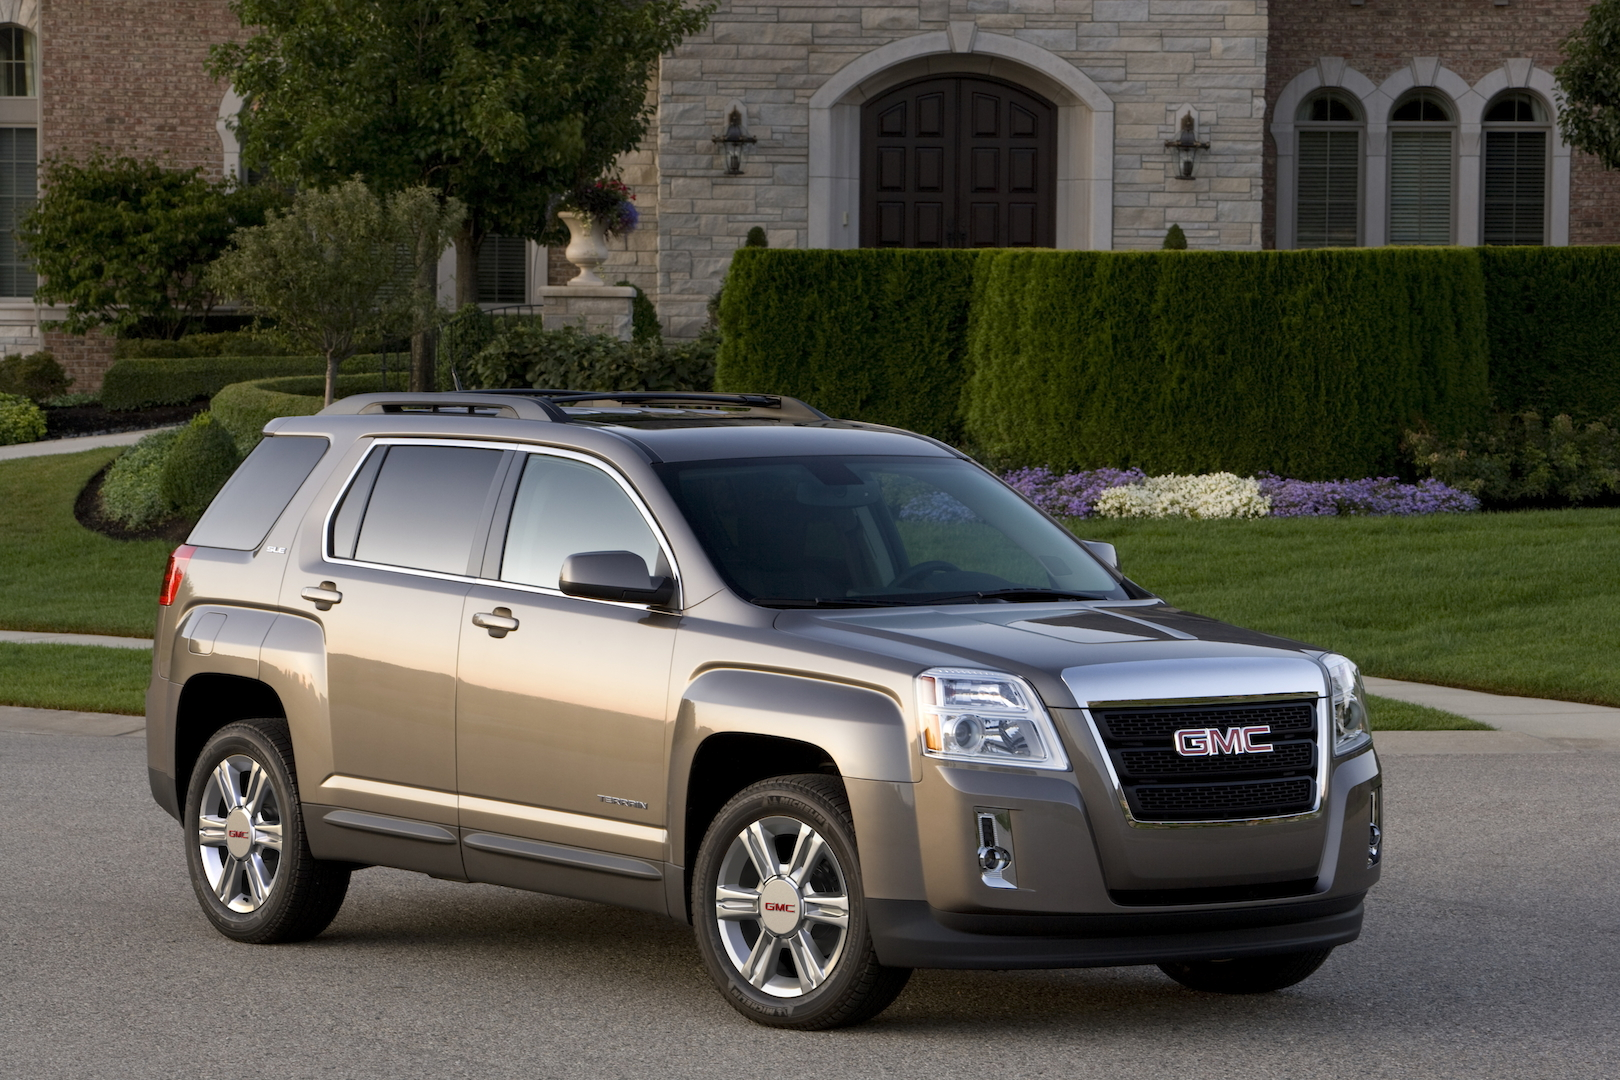 2015 Gmc Terrain Prices And Expert Review The Car Connection